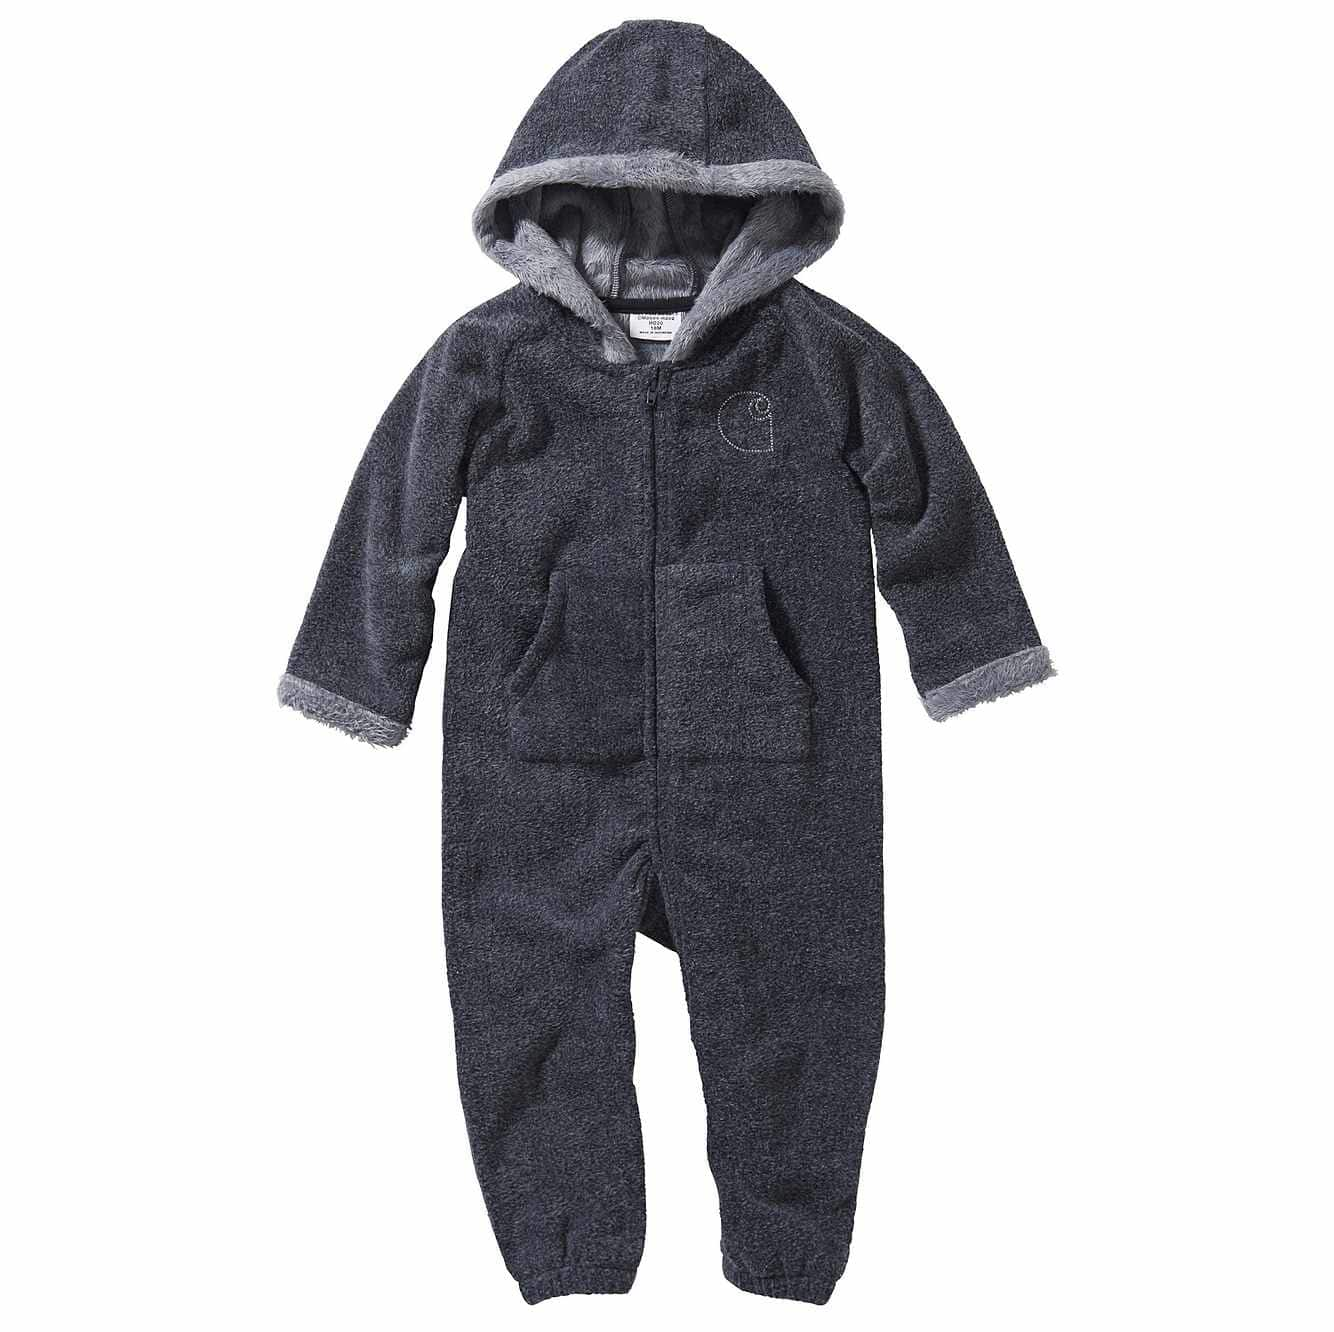 Picture of Long Sleeve Polar Fleece/ Fur Lined Coverall in Granite Heather